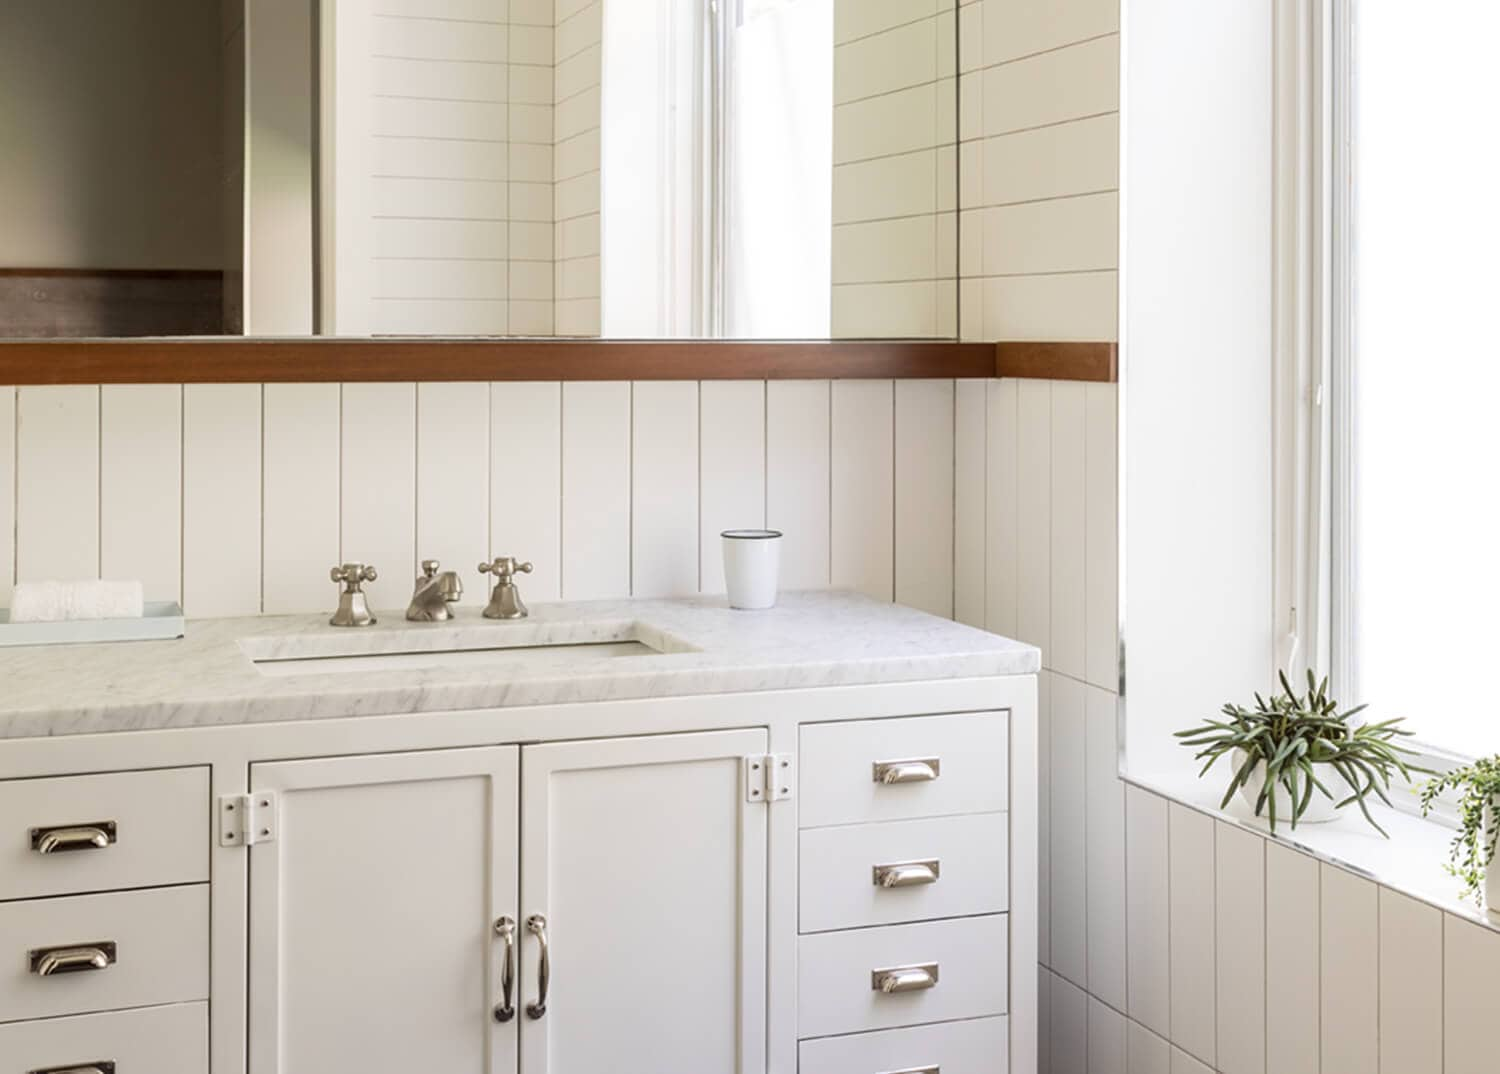 A country-style all-white bathroom with beautiful shiplap walls and white cabinetry at Mountainside Treatment Center